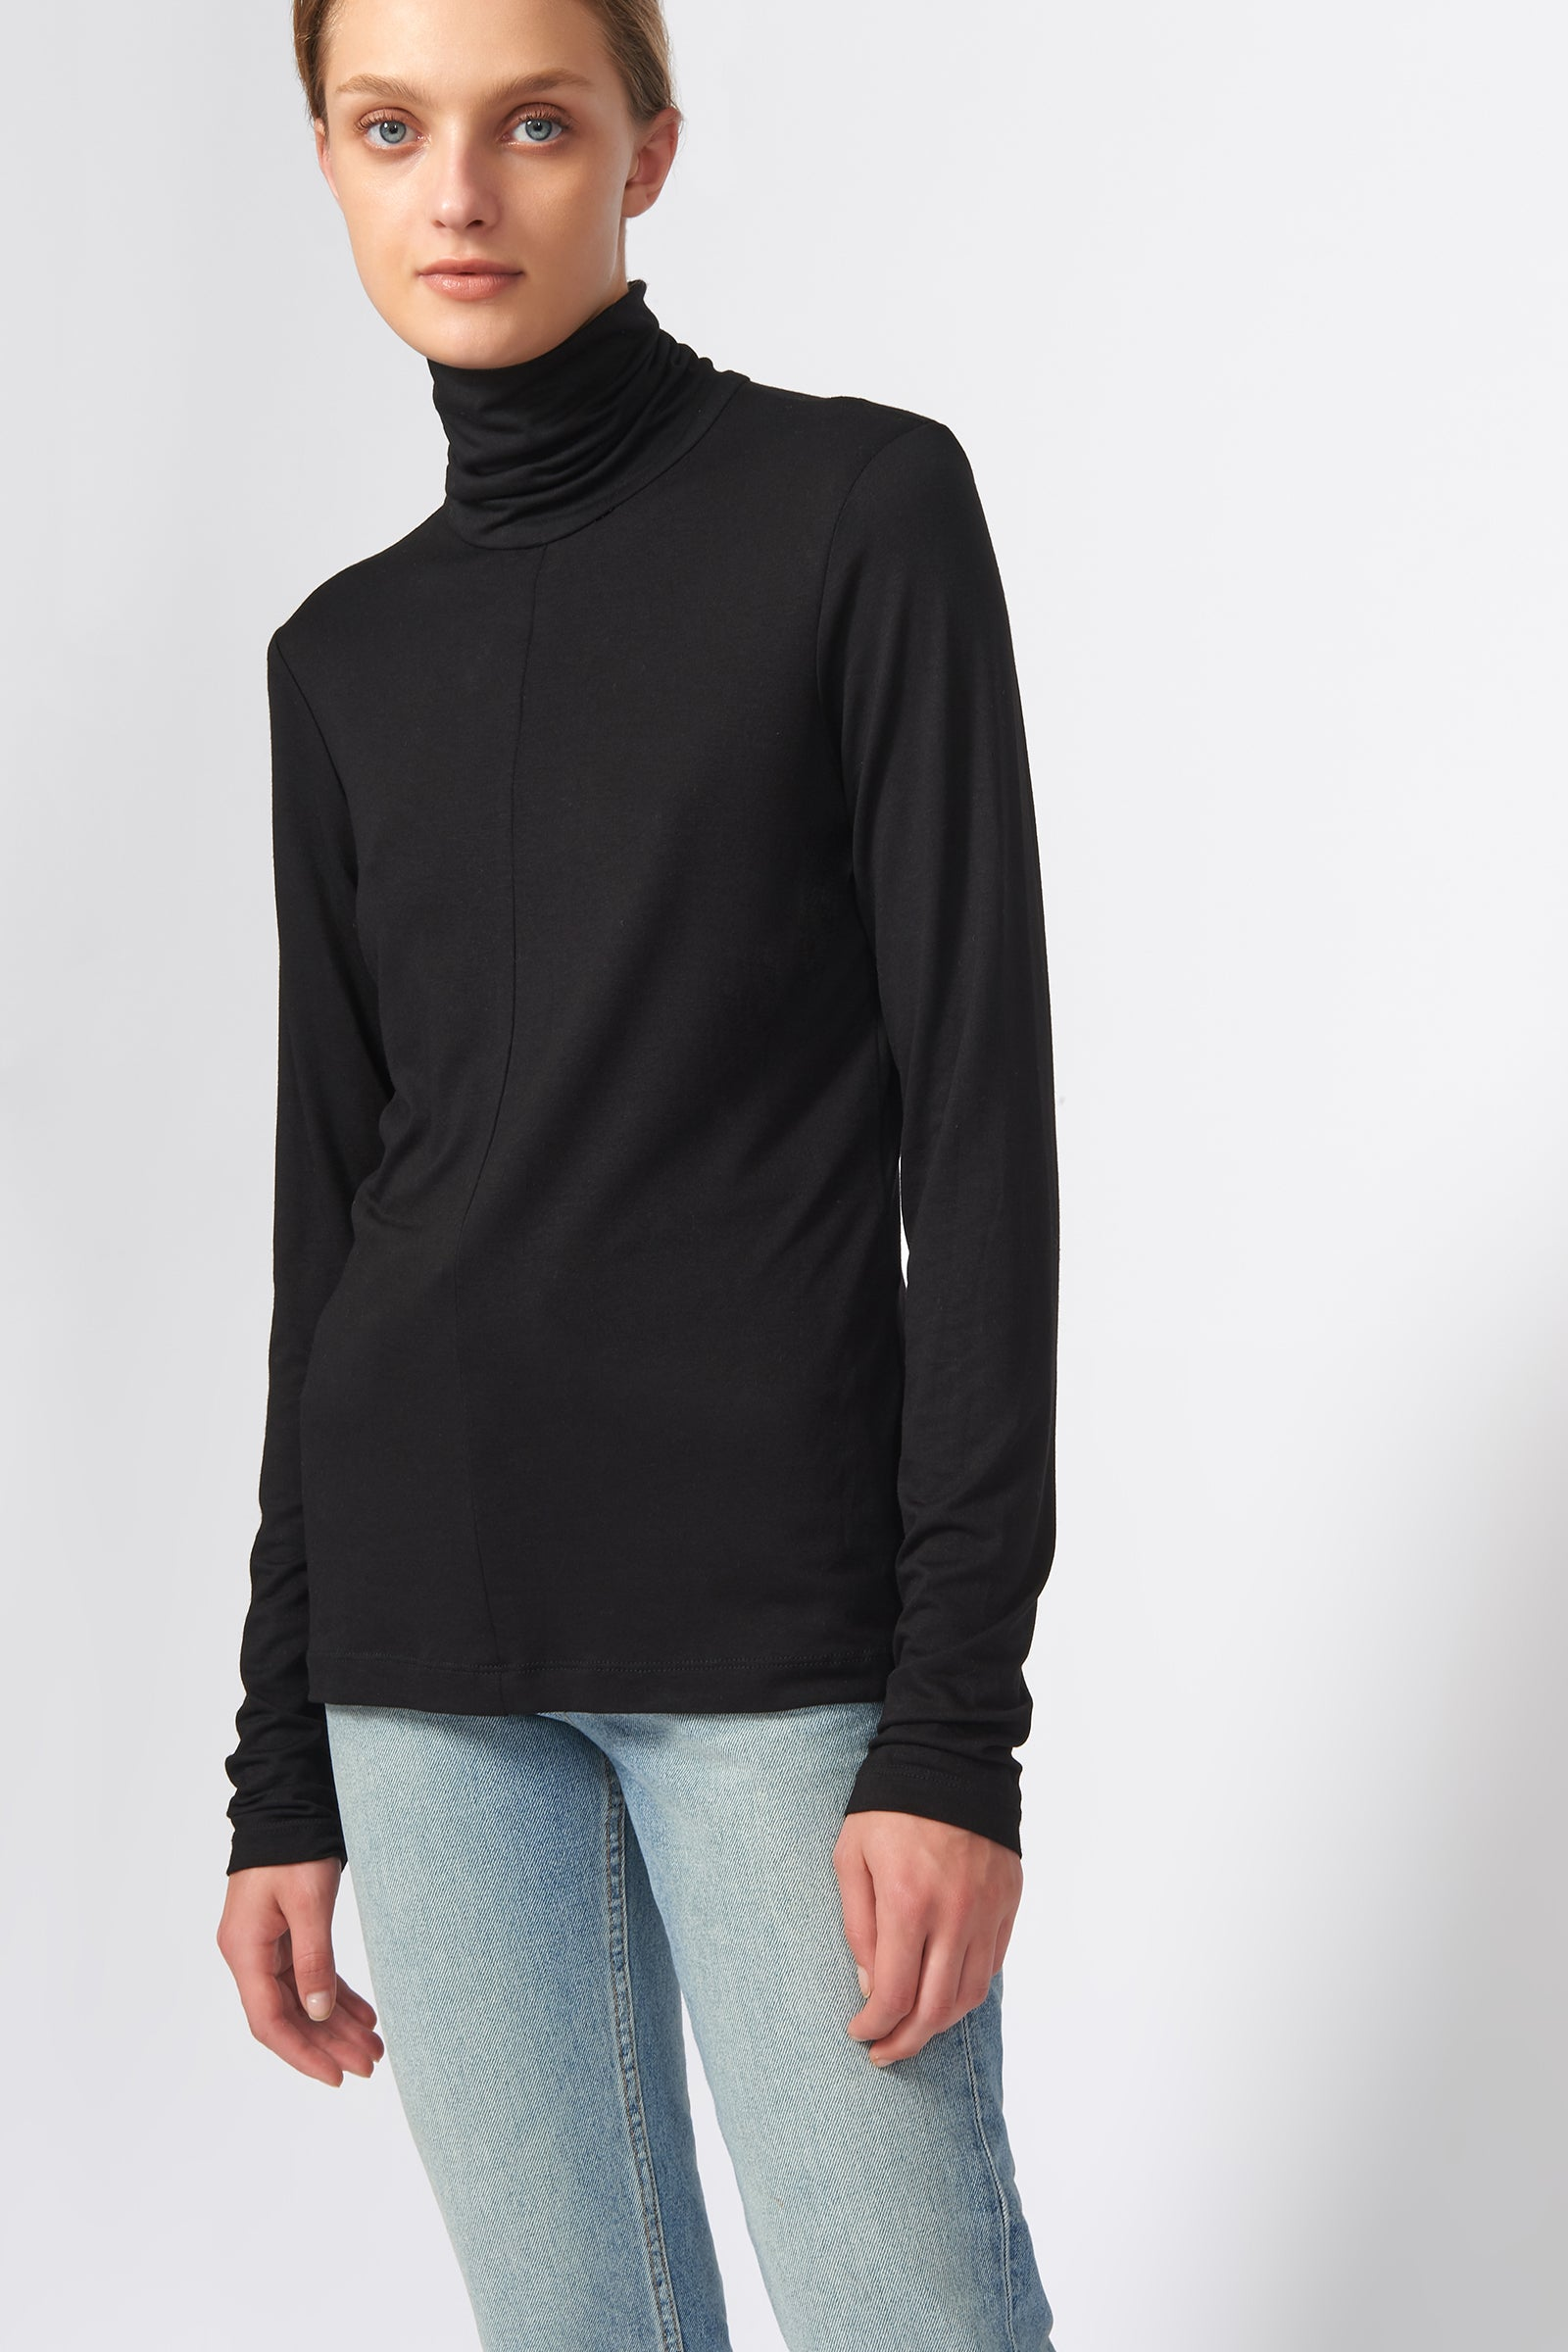 Kal Rieman Seamed Turtleneck in Black on Model Front View